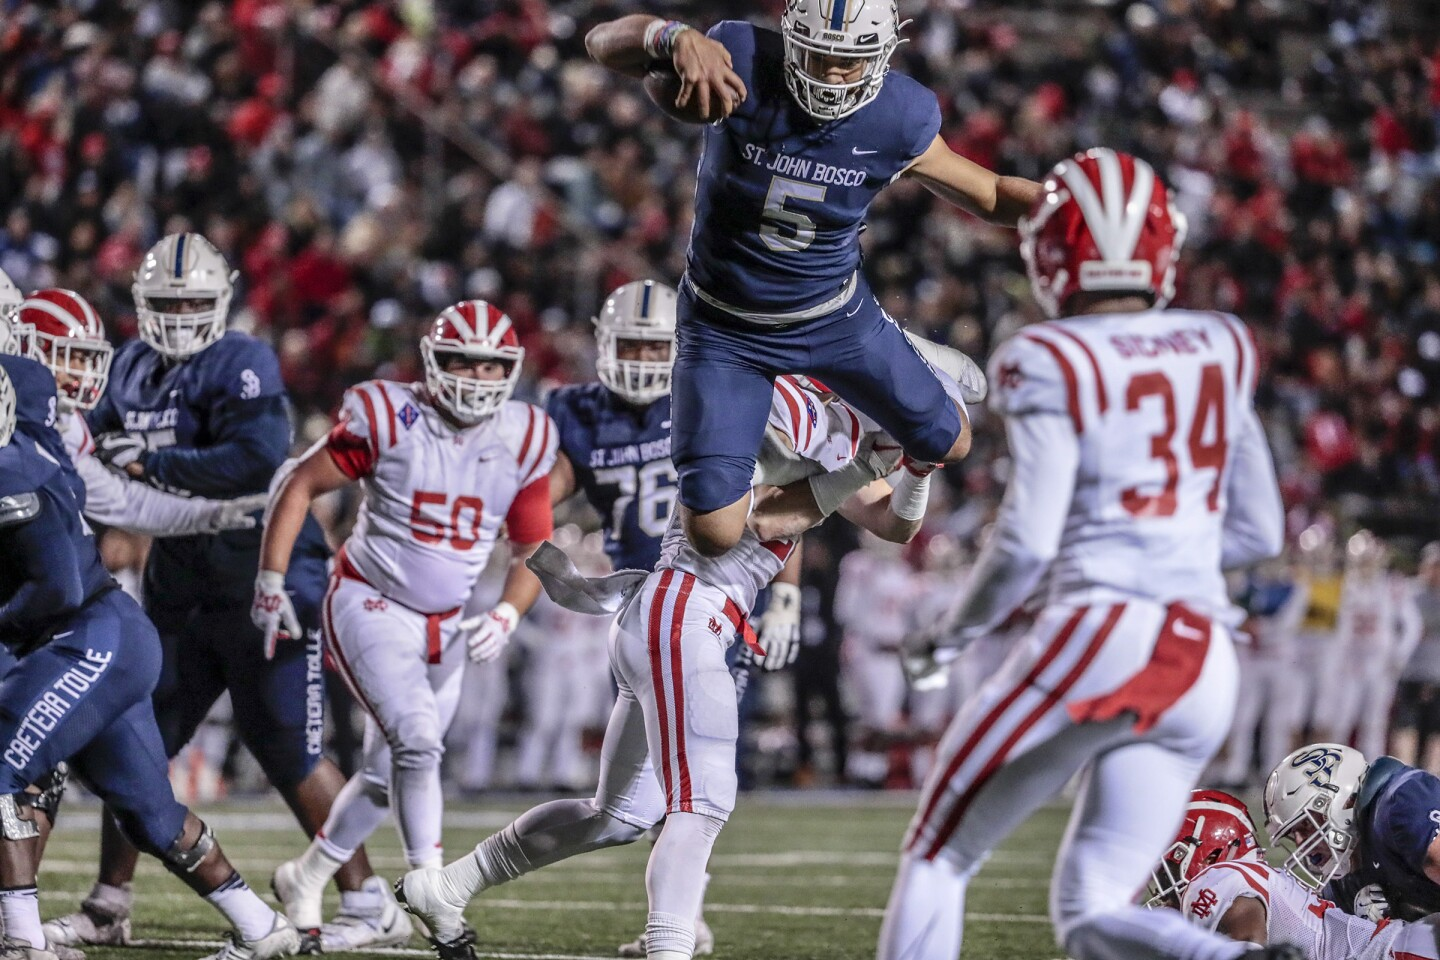 LOS ANGELES, CA, SATURDAY, NOVEMBER 30, 2019 -Mater Dei-St. John Bosco football in Southern Section Division 1 championship game at Cerritos College. (Robert Gauthier/Los Angeles Times)